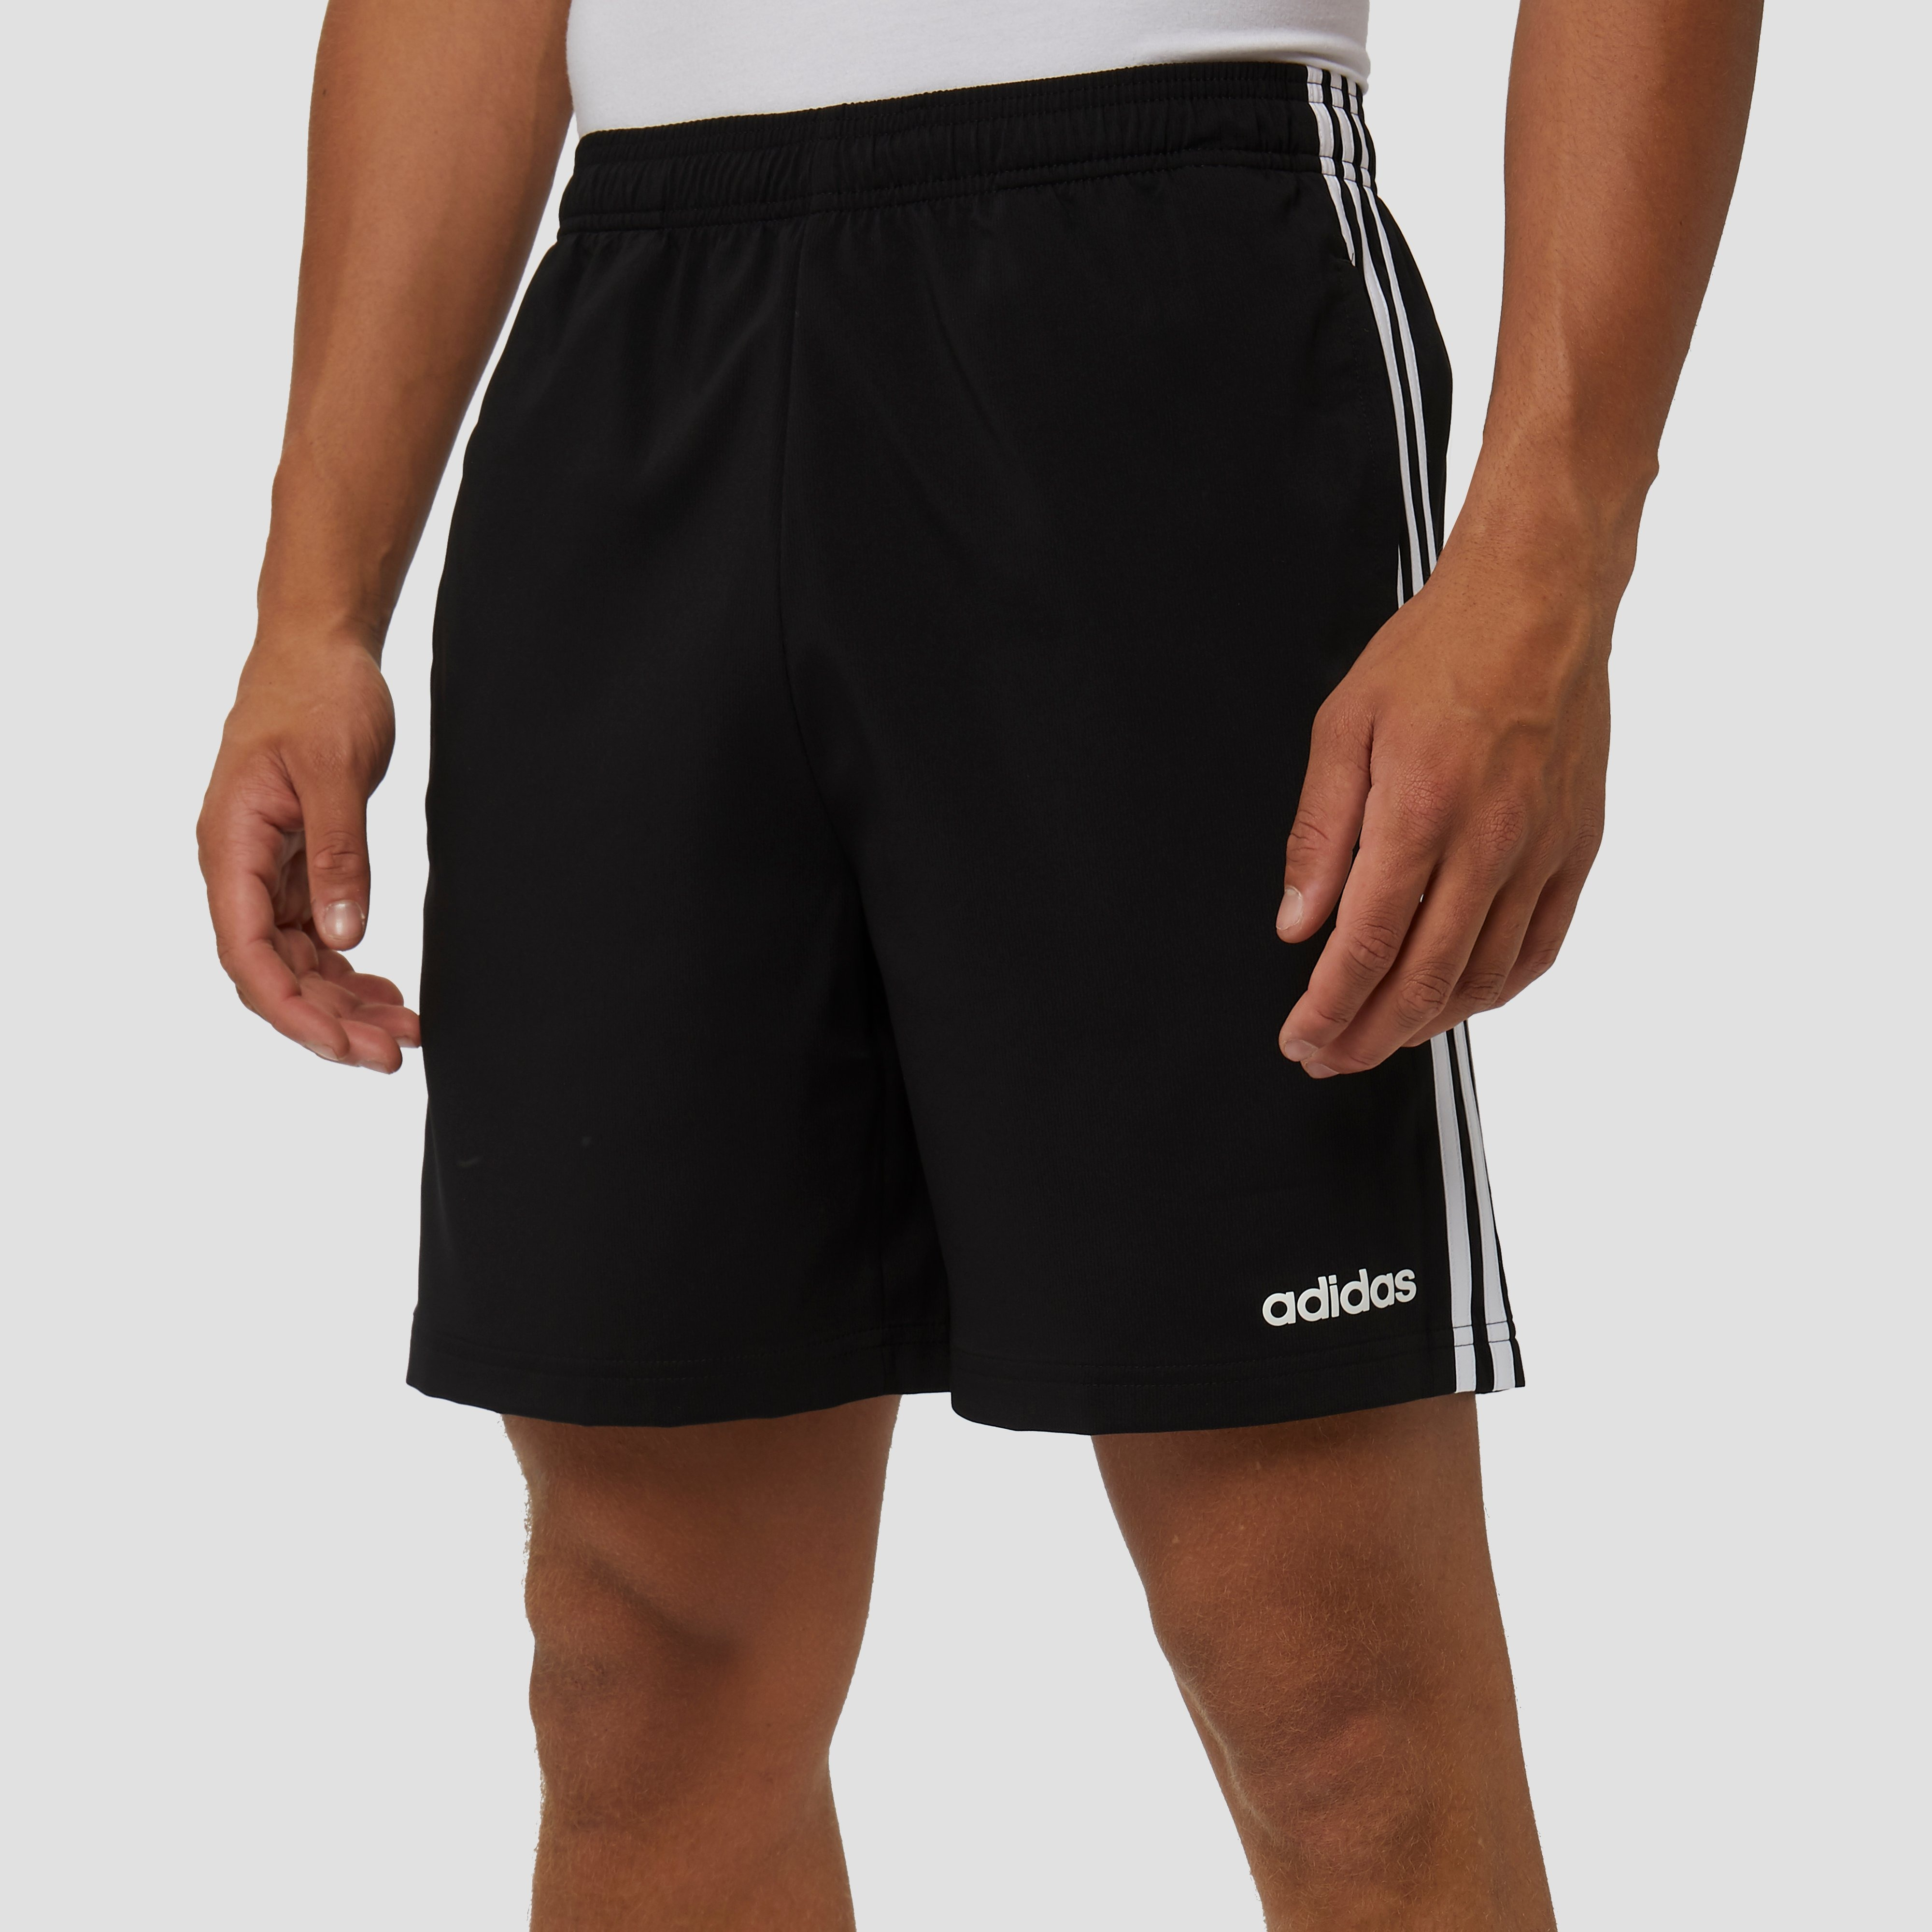 ADIDAS ESSENTIALS 3 STRIPES CHELSEA KORTE BROEK ZWART HEREN | Perrysport